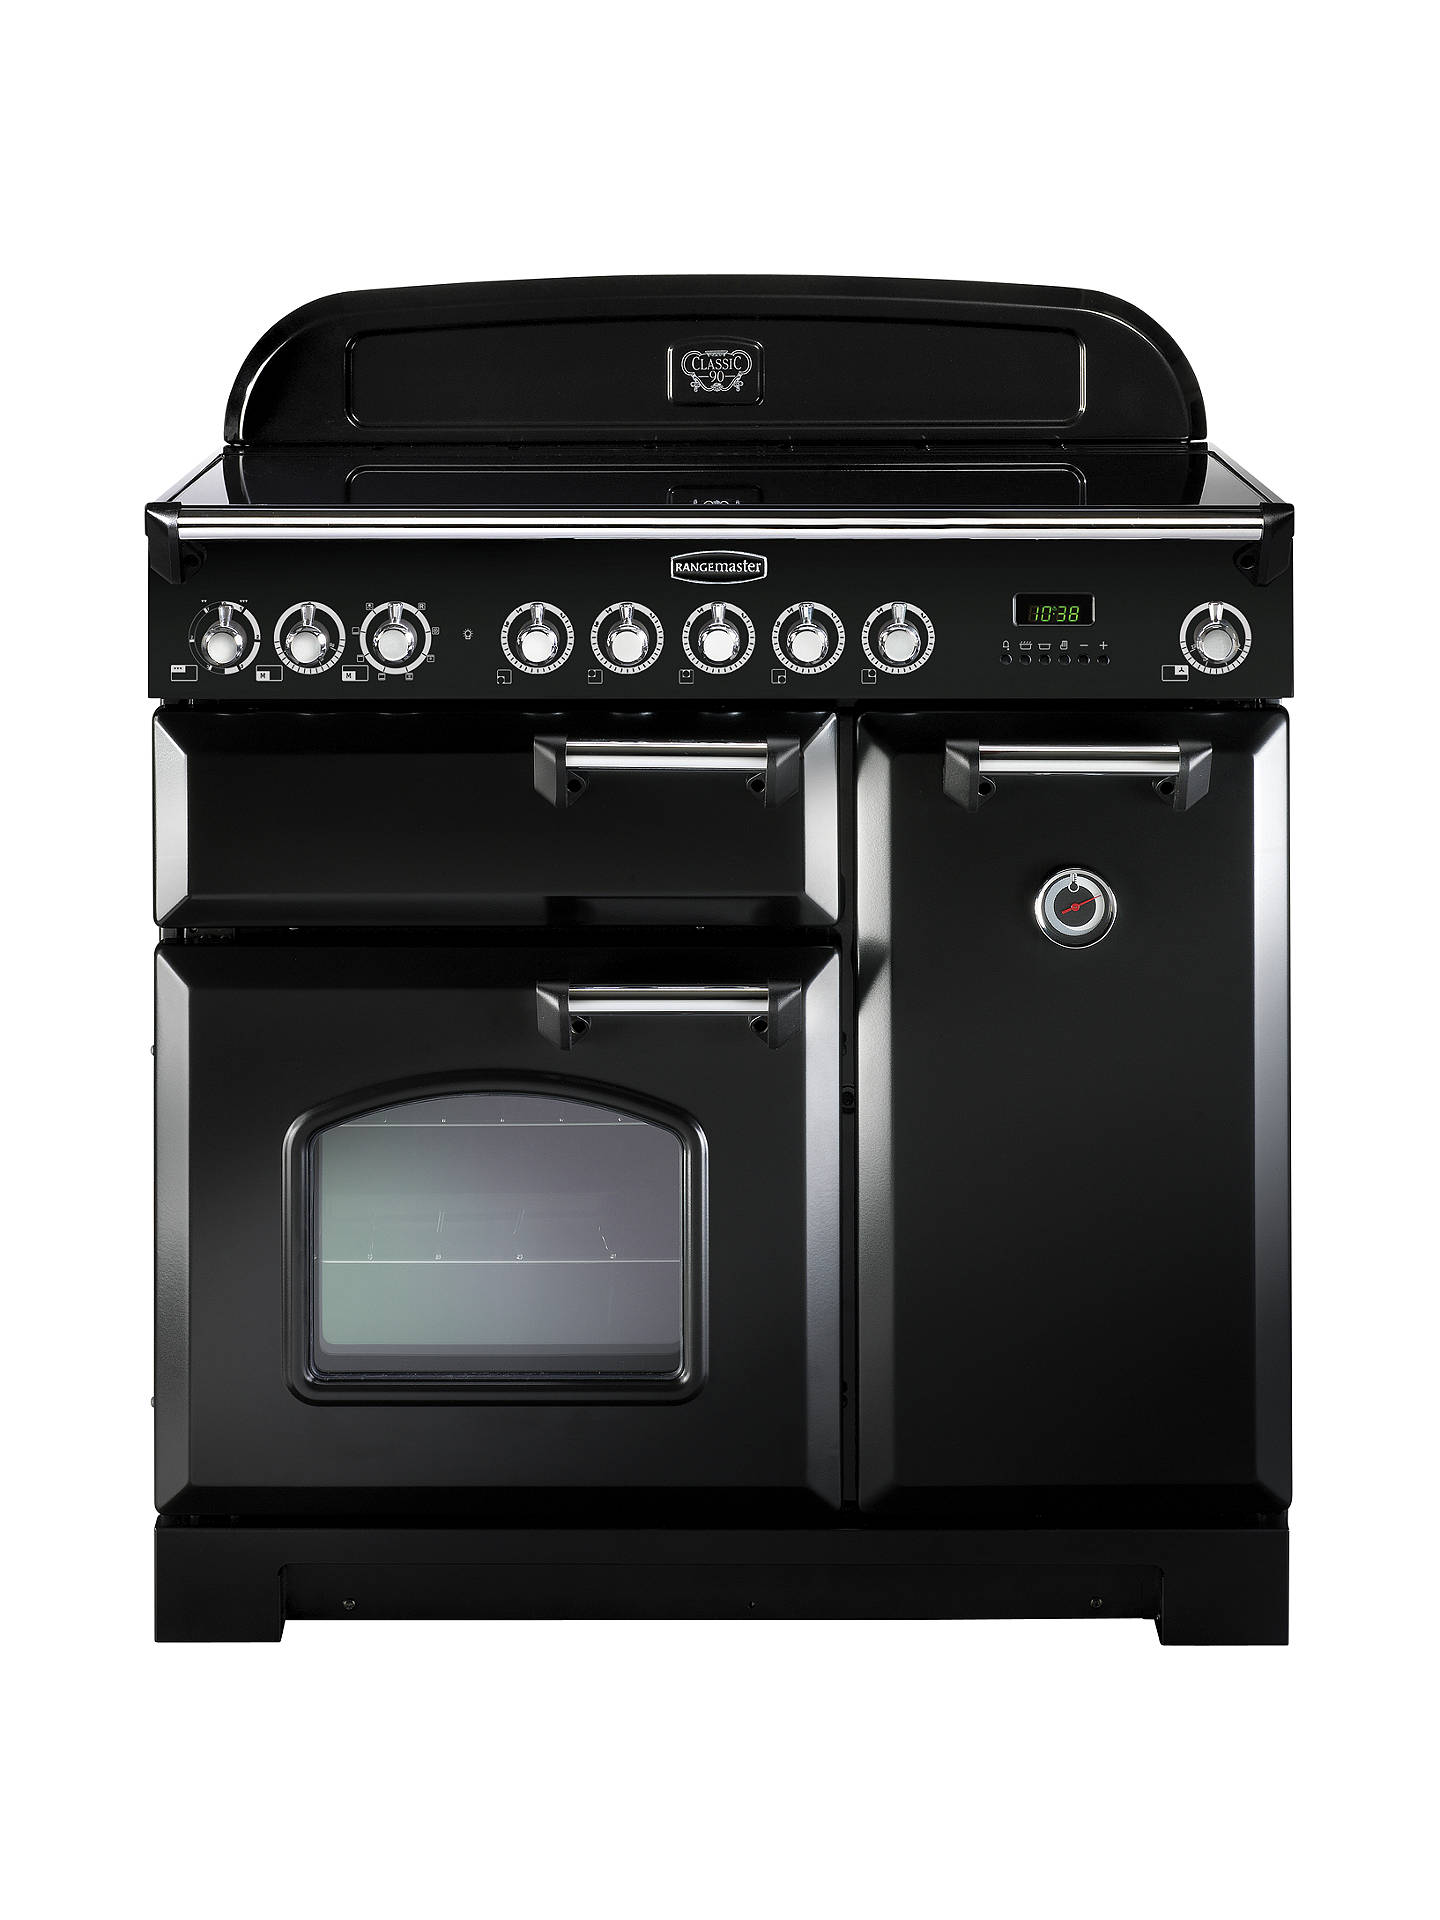 BuyRangemaster Classic Deluxe 90 Induction Hob Range Cooker, Black/Chrome Trim Online at johnlewis.com